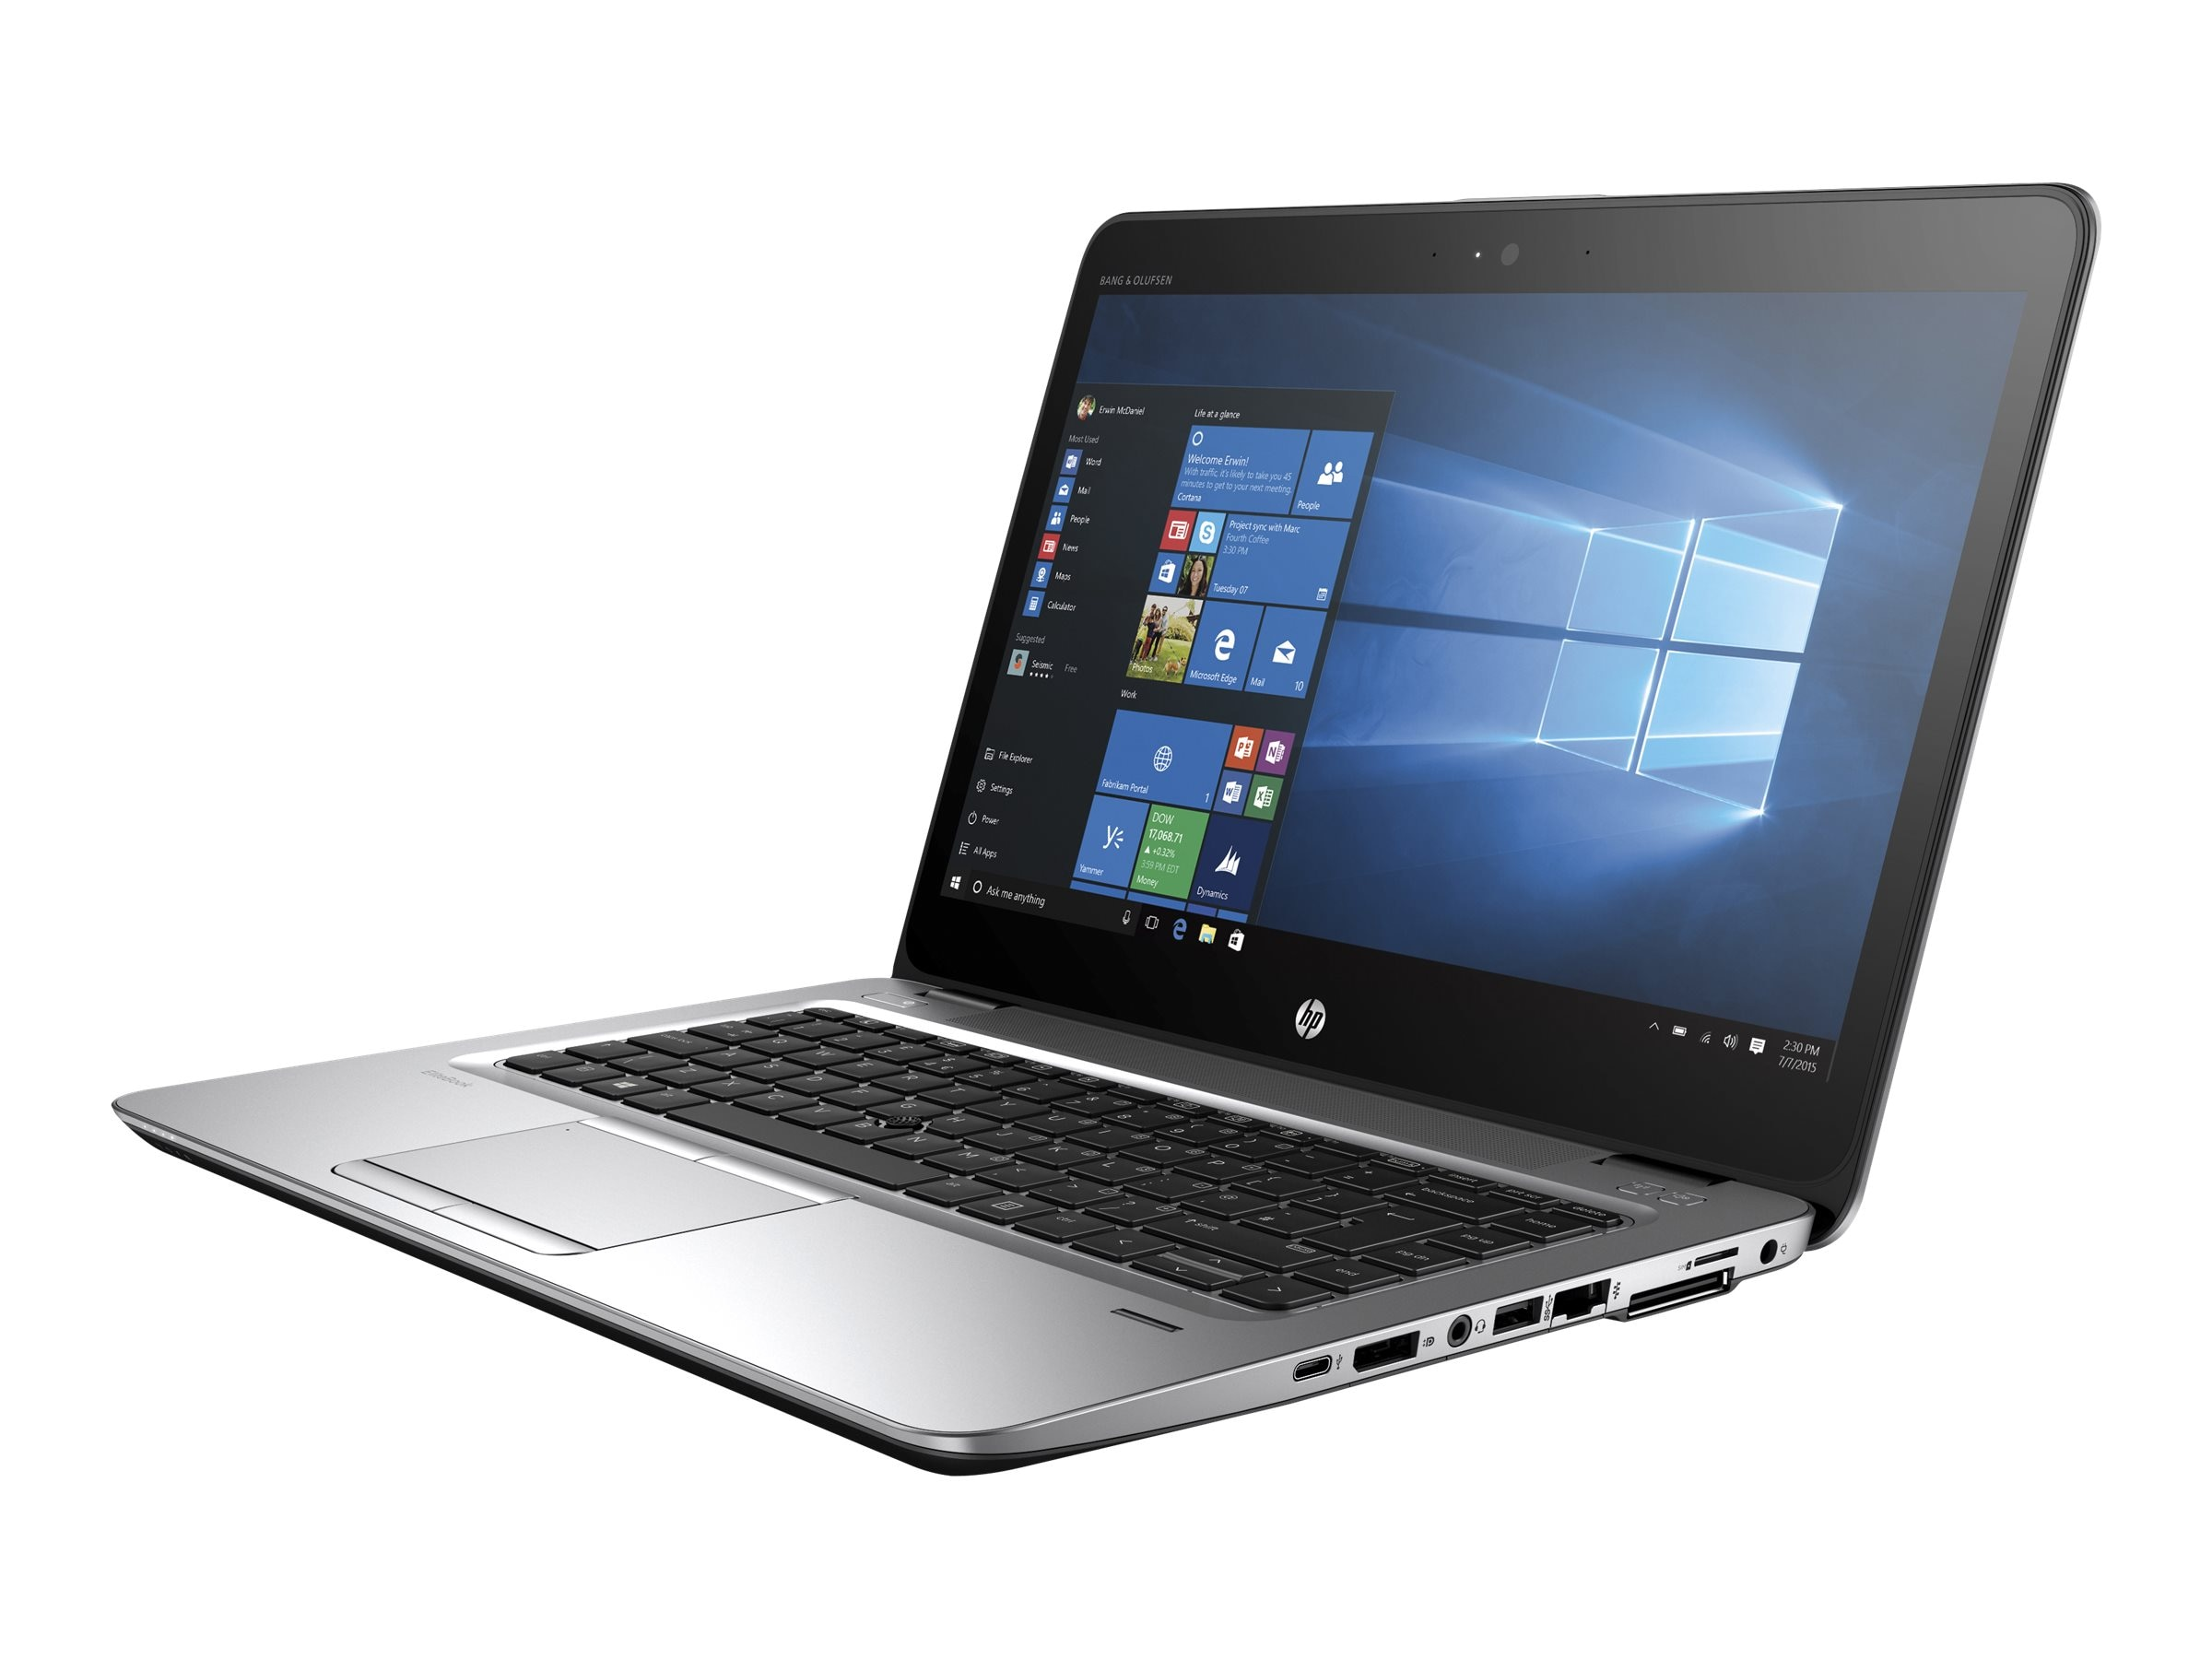 HP EliteBook 745 AMD A10-8700B 4GB 500GB 14